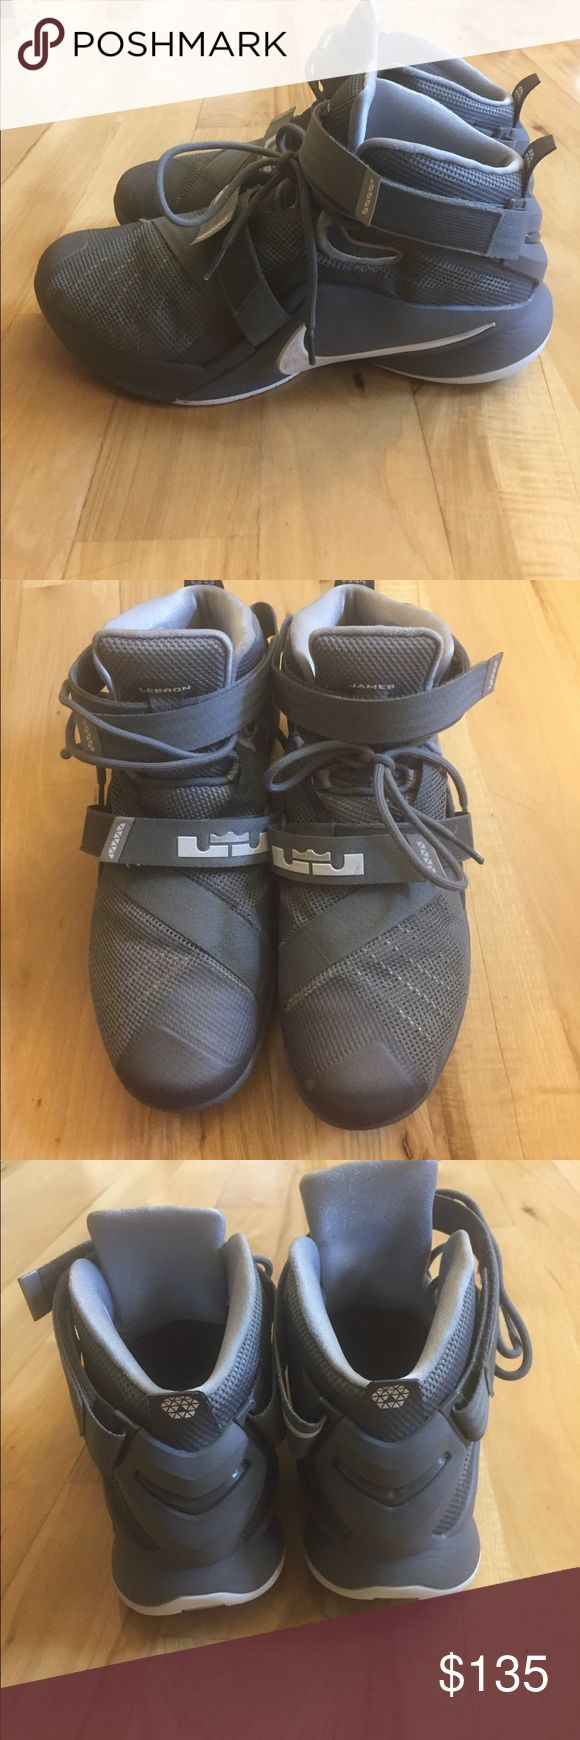 """EUC men's Nike size 10.5 """"Lebron James"""" shoes Excellent used condition men's size 10.5 """"lebron James soldier IV"""" shoes. These were worn very few times and only show very minor areas of wear-as shown in the photos Nike Shoes"""